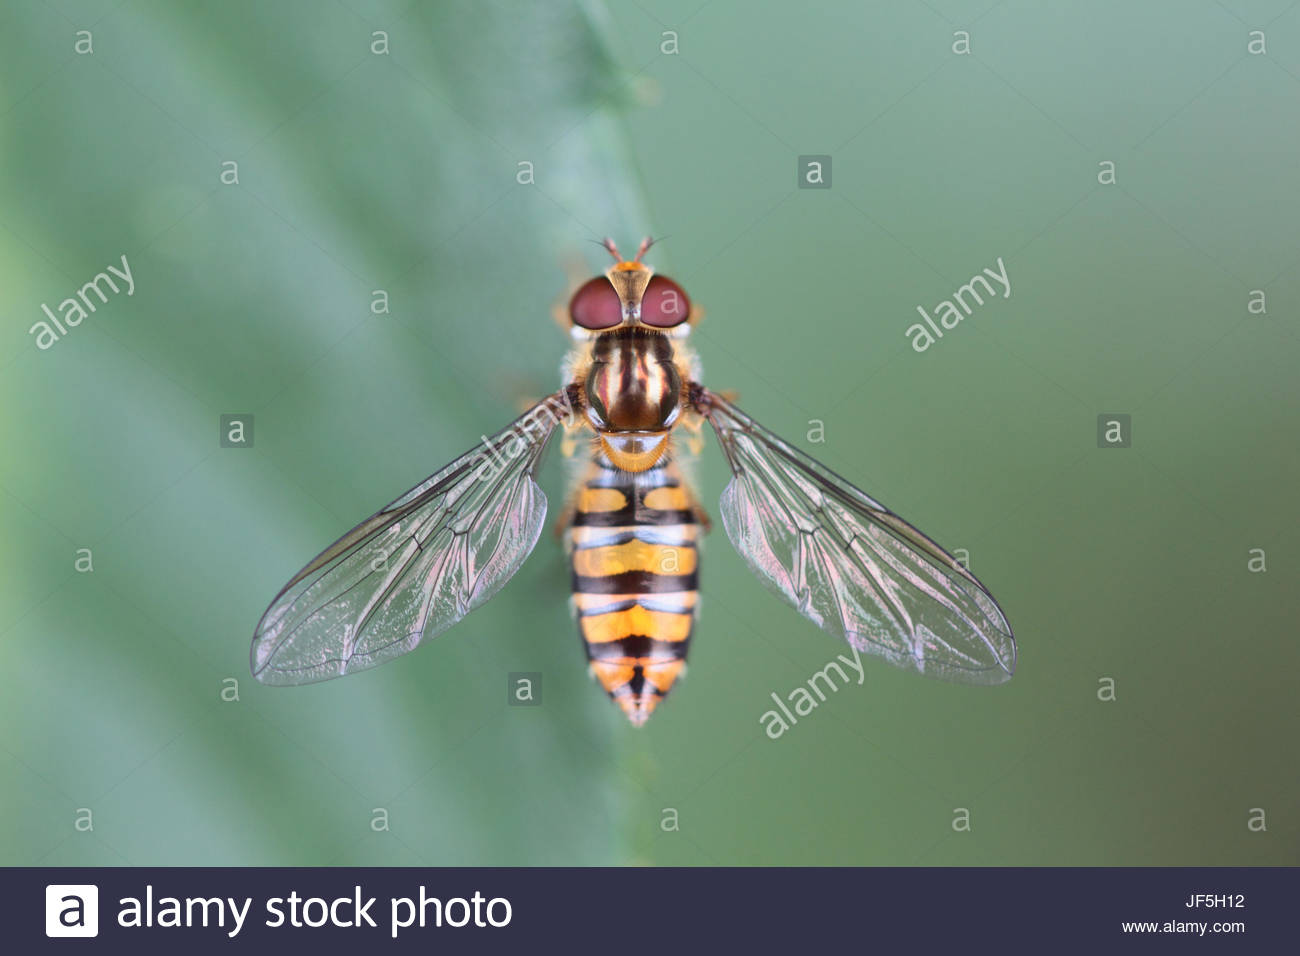 Portrait of a hoverfly, sometimes called flower flies or syrphid flies, they make up the insect family Syrphidae. - Stock Image